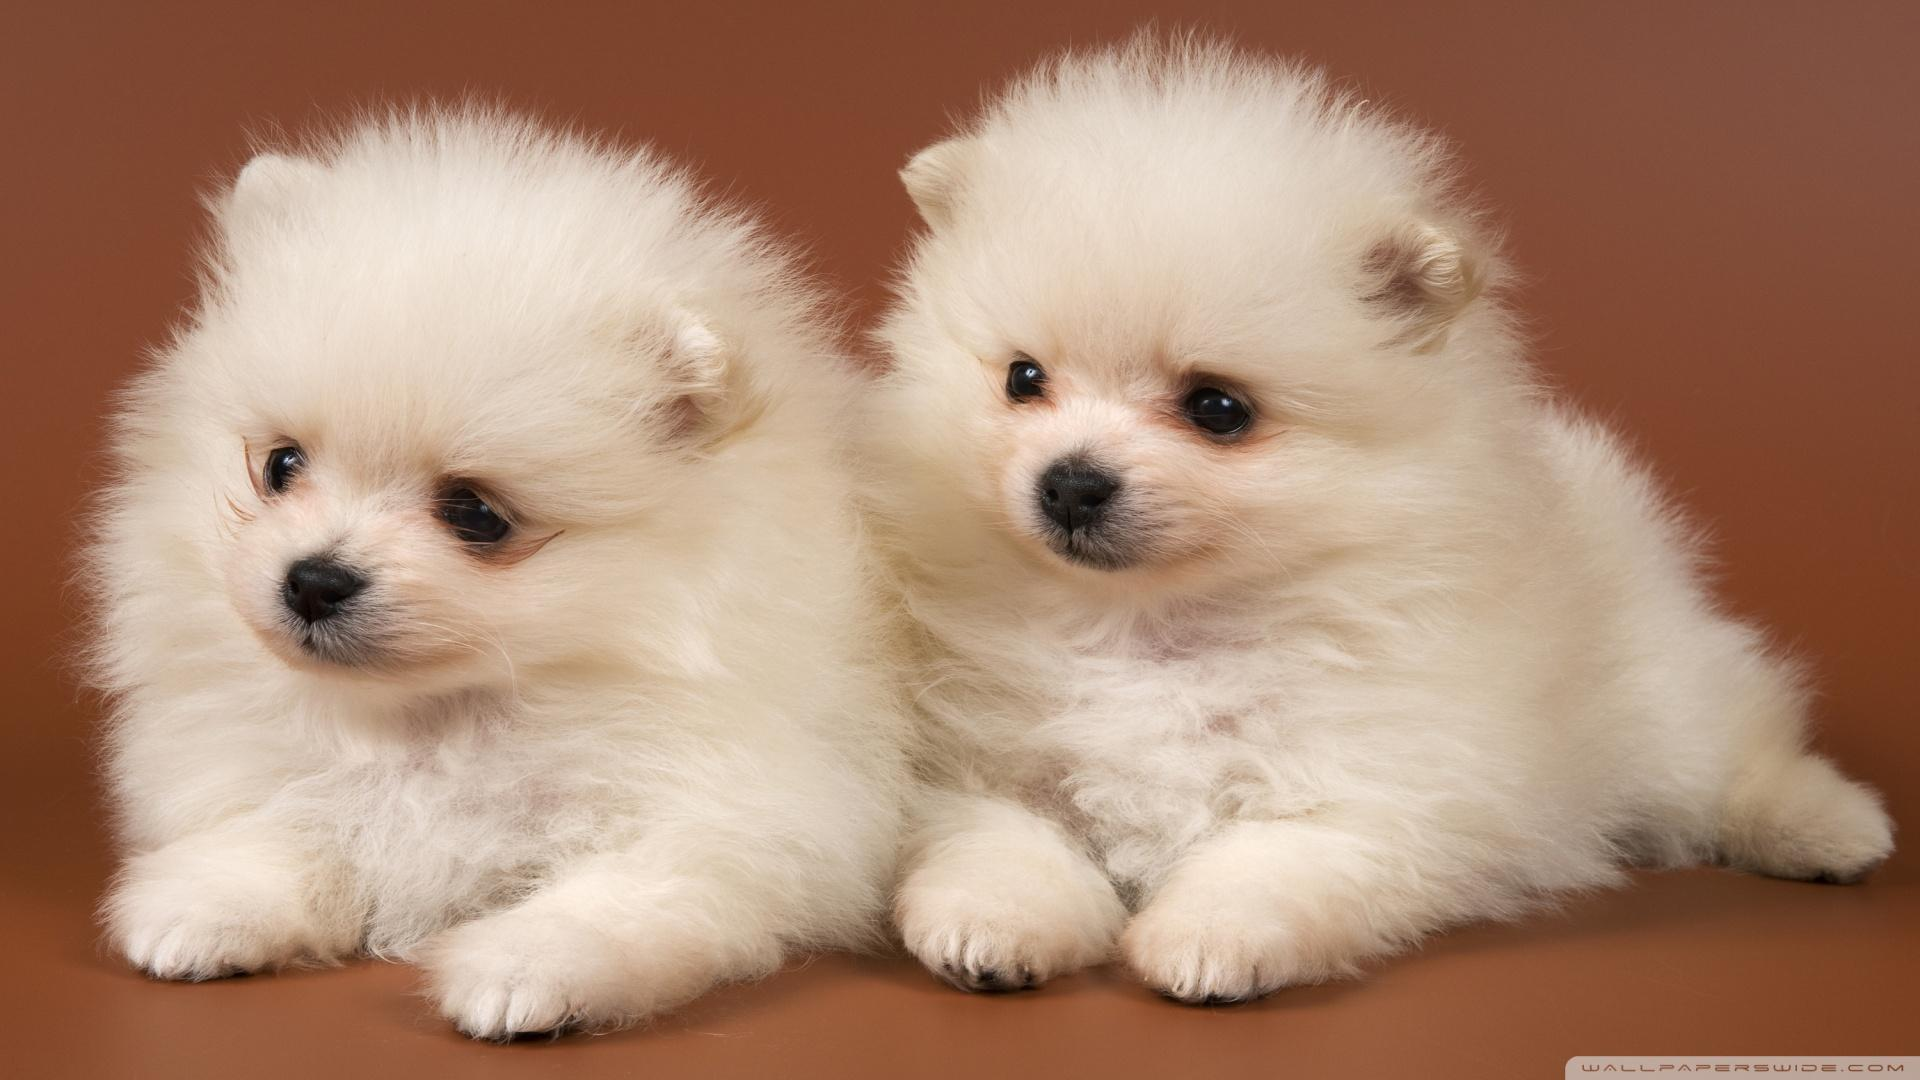 Pomeranian Puppies HD desktop wallpapers : High Definition : Mobile